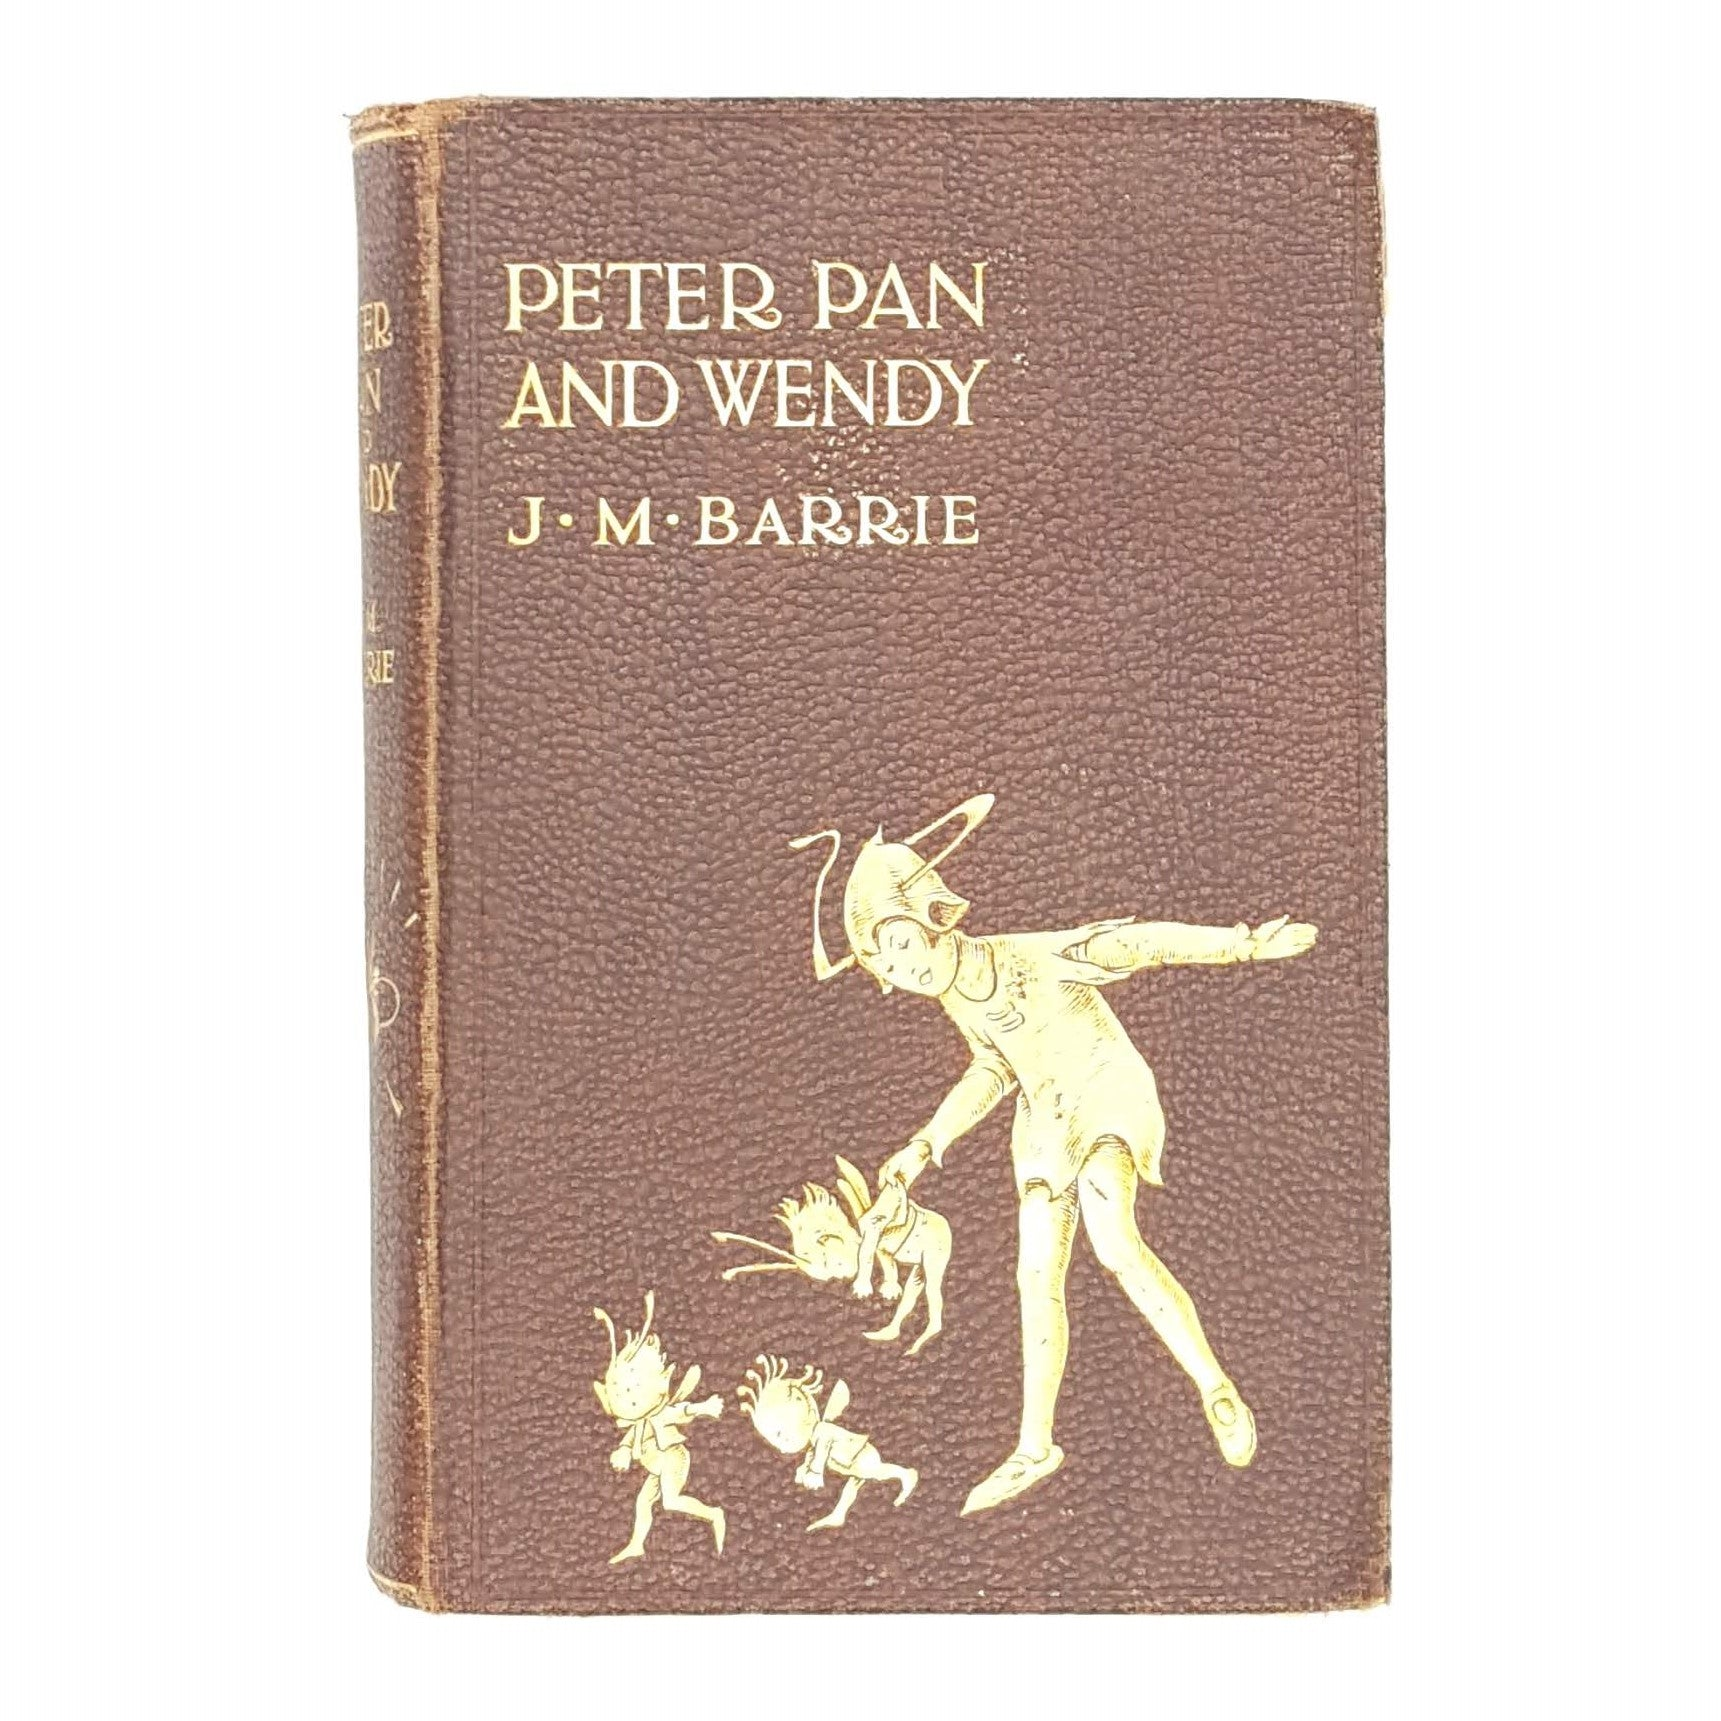 Rare-Edition-of-Peter-Pan-and-Wendy-by-J.-M.-Barrie